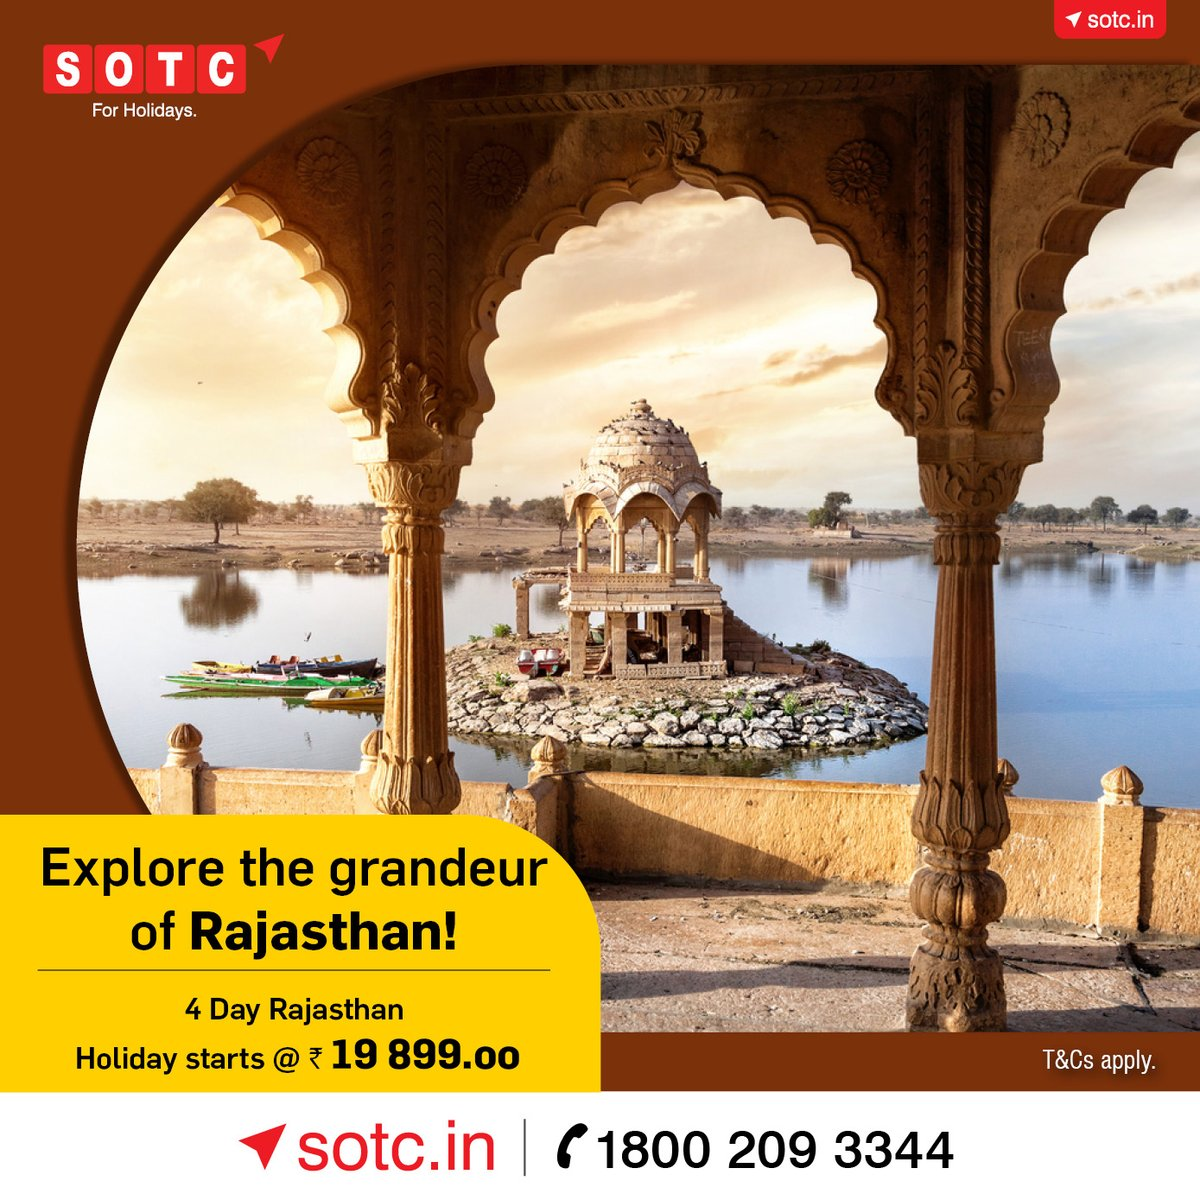 Experience the land of #royalty, #grandeur & vibrant culture. Experience #Rajasthan! Explore #holiday packages here: or call 1800 209 3344  T&Cs apply #SOTC #SOTCTravel  #incredibleindia #Indiaholidays #india #travelnow @madhavanmenon55